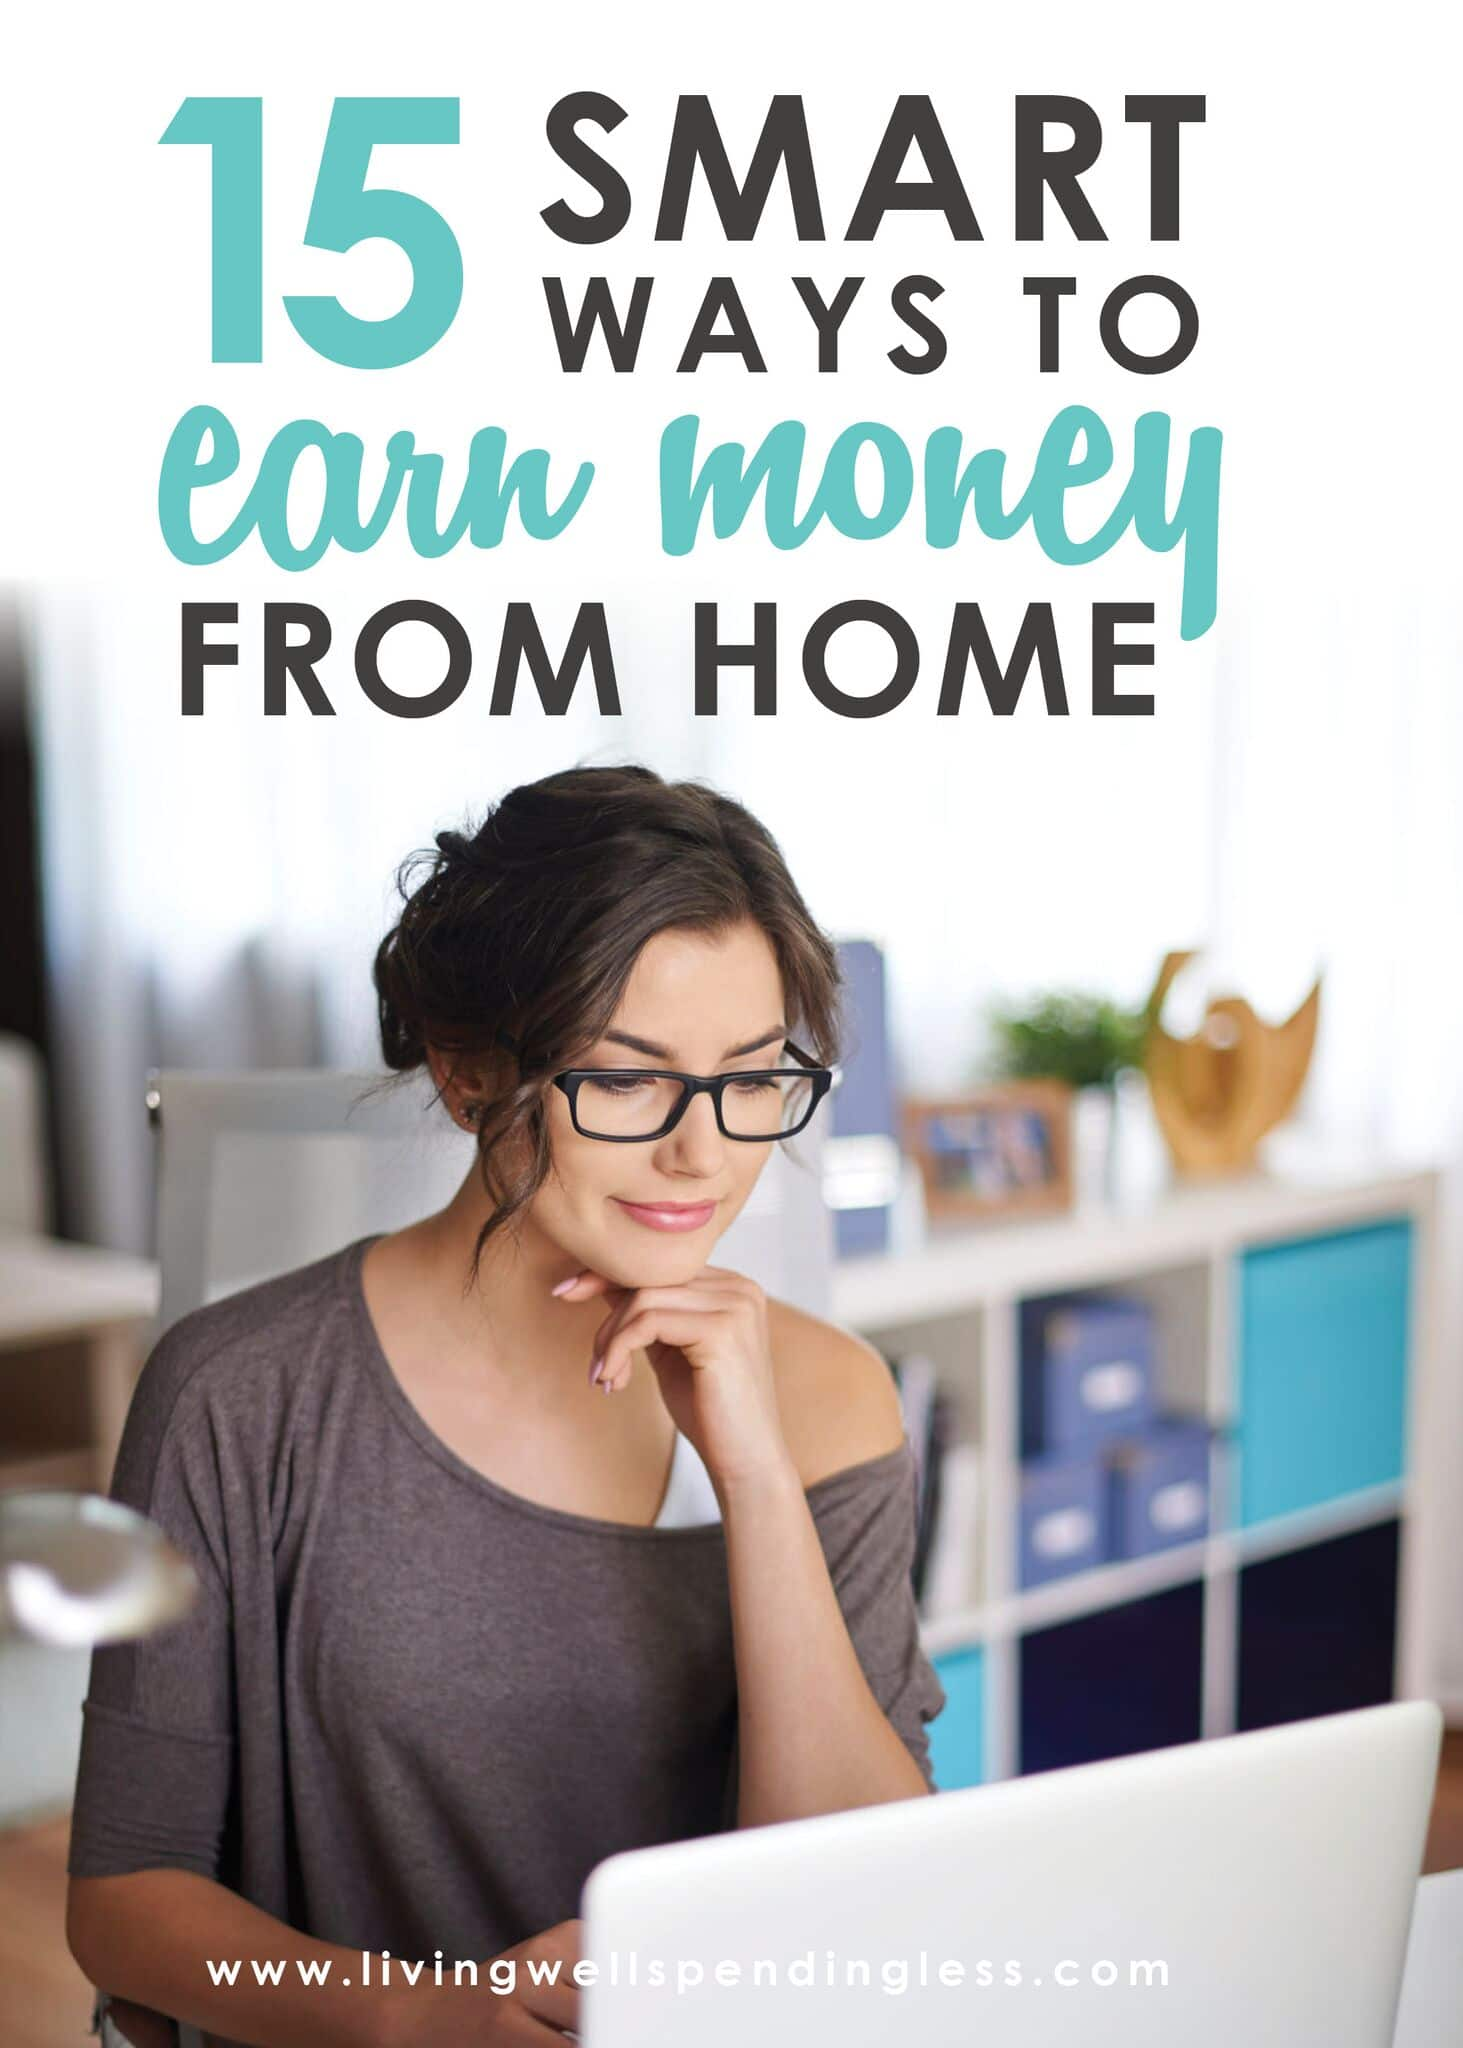 15 Smart Ways to Earn Money From Home ⎢ Make a Full-Time Living Without Leaving the House ⎢ Start an Online Business ⎢ Entrepreneur ⎢ Work for Yourself ⎢ Work from Home ⎢ Stay at Home Mom